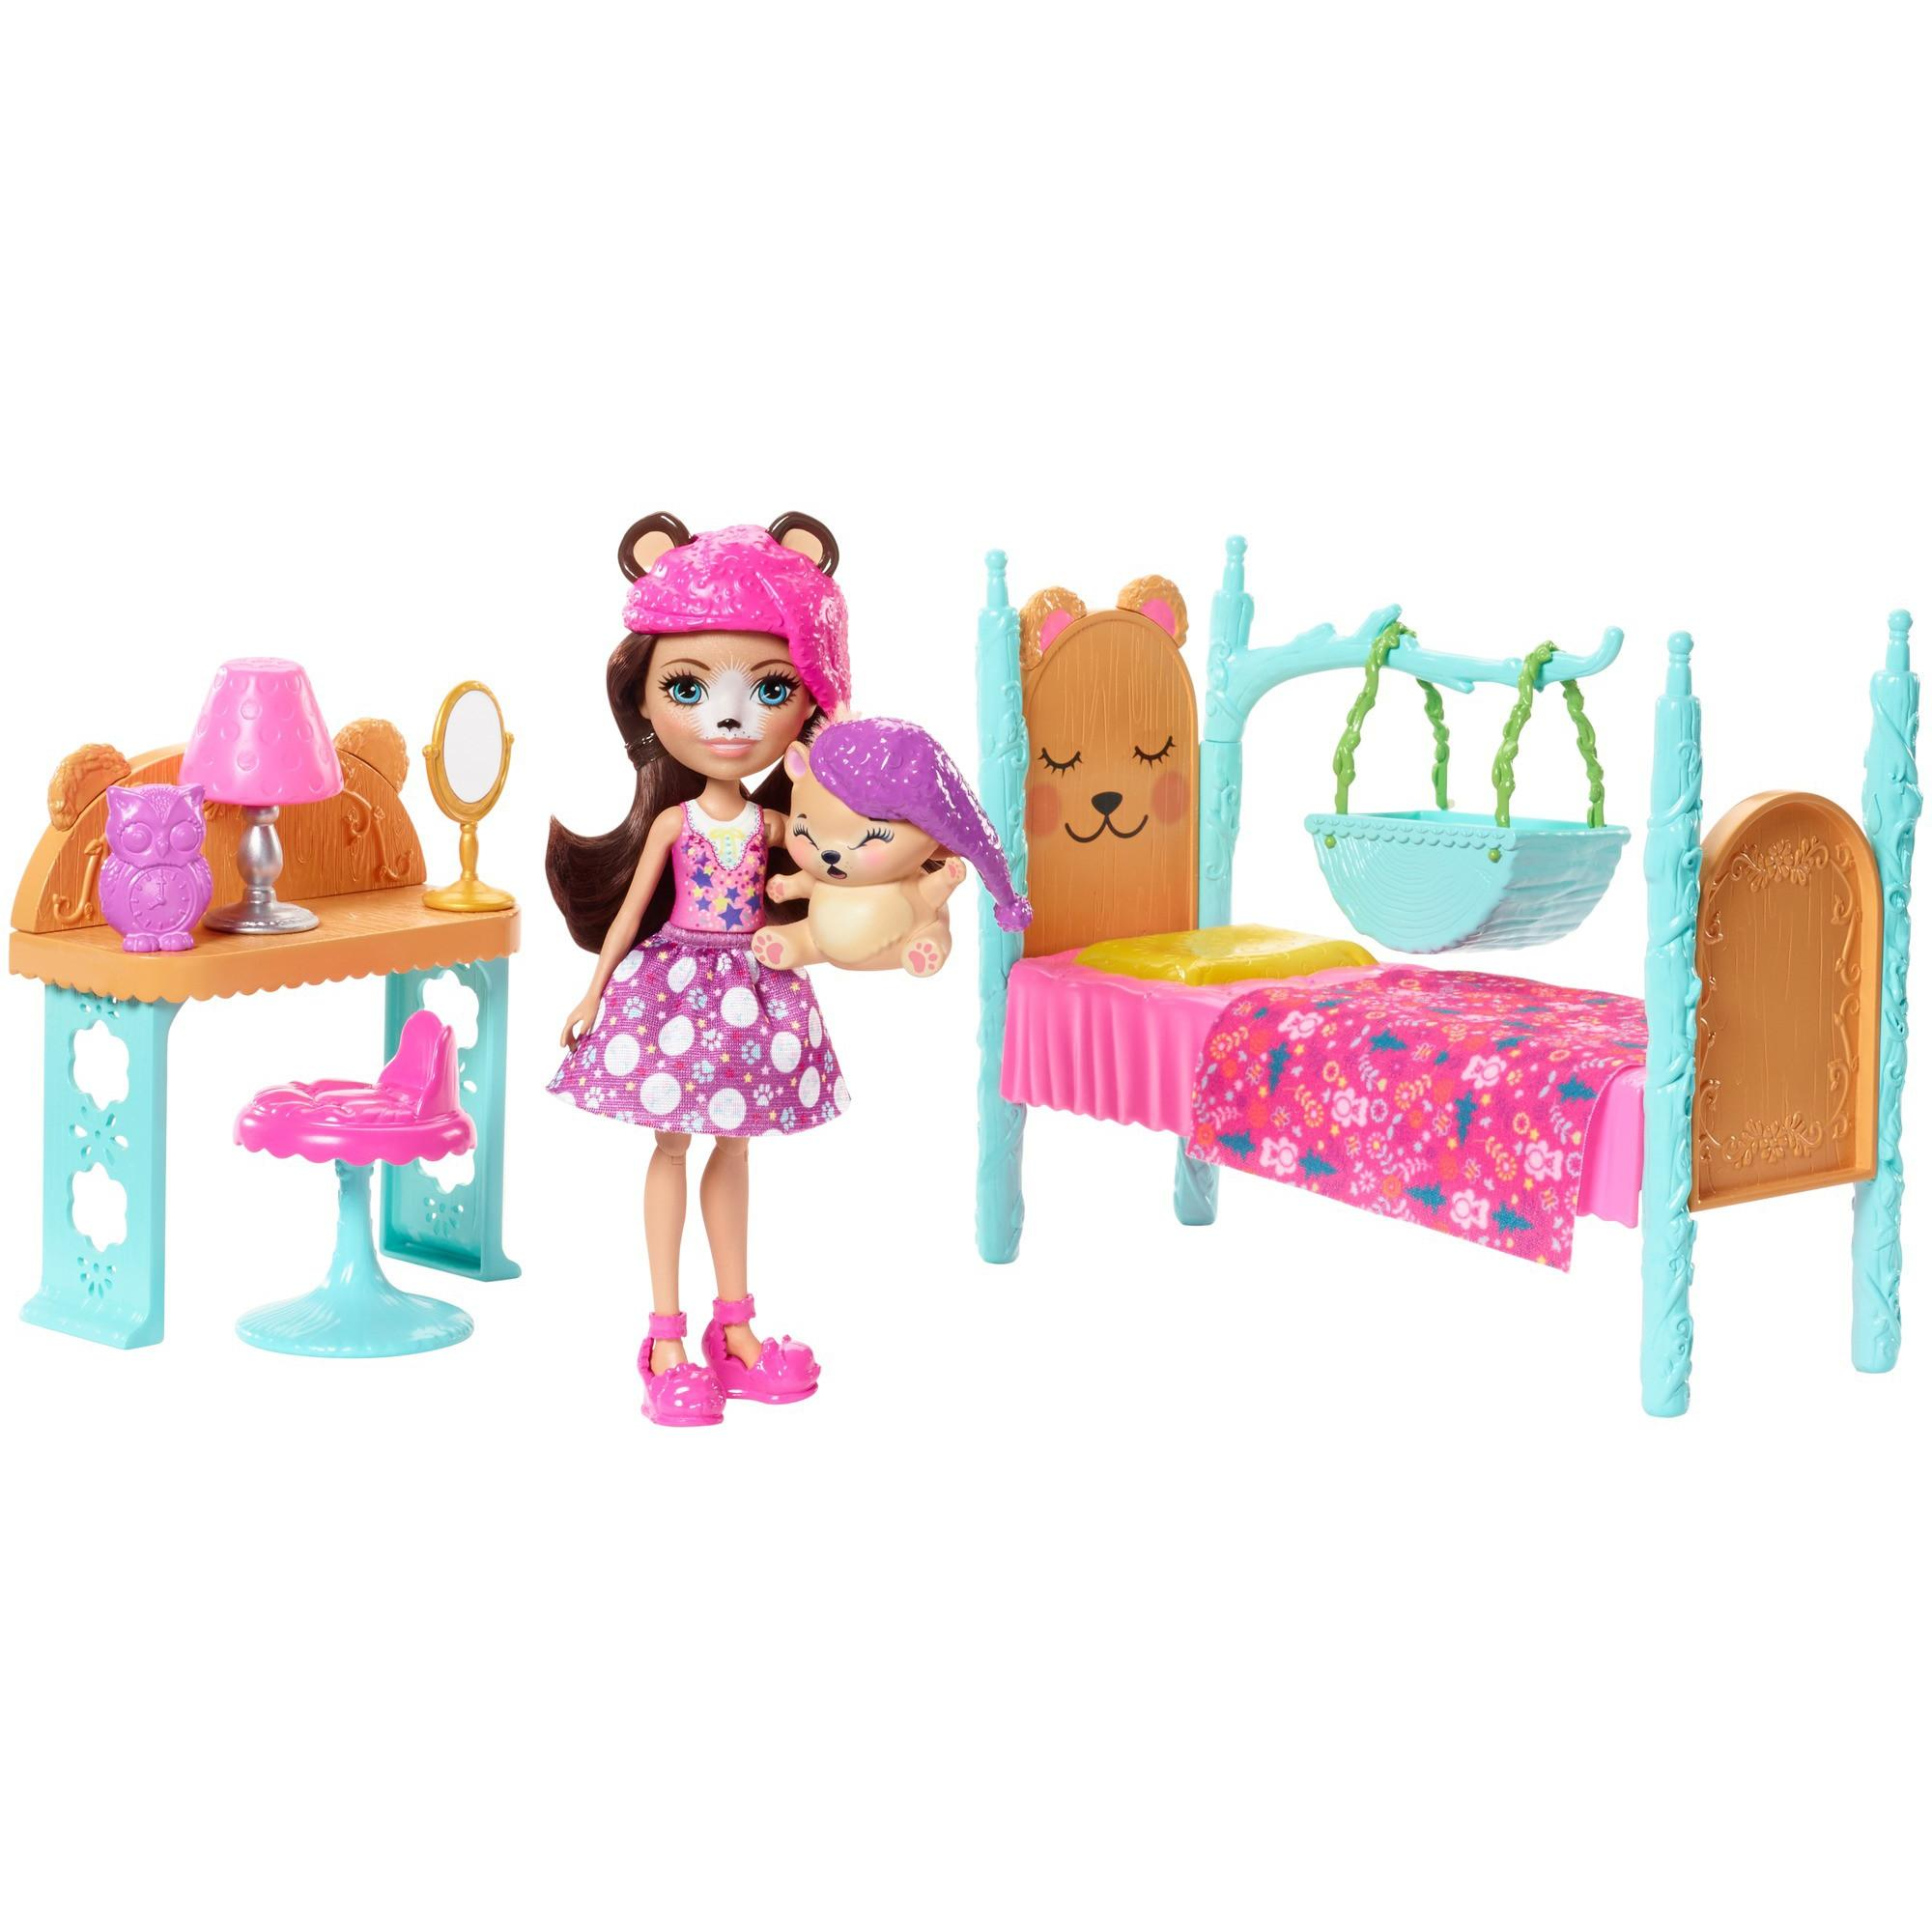 Enchantimals Dreamy Bedroom Playset + Bren Bear Doll & Snore Figure